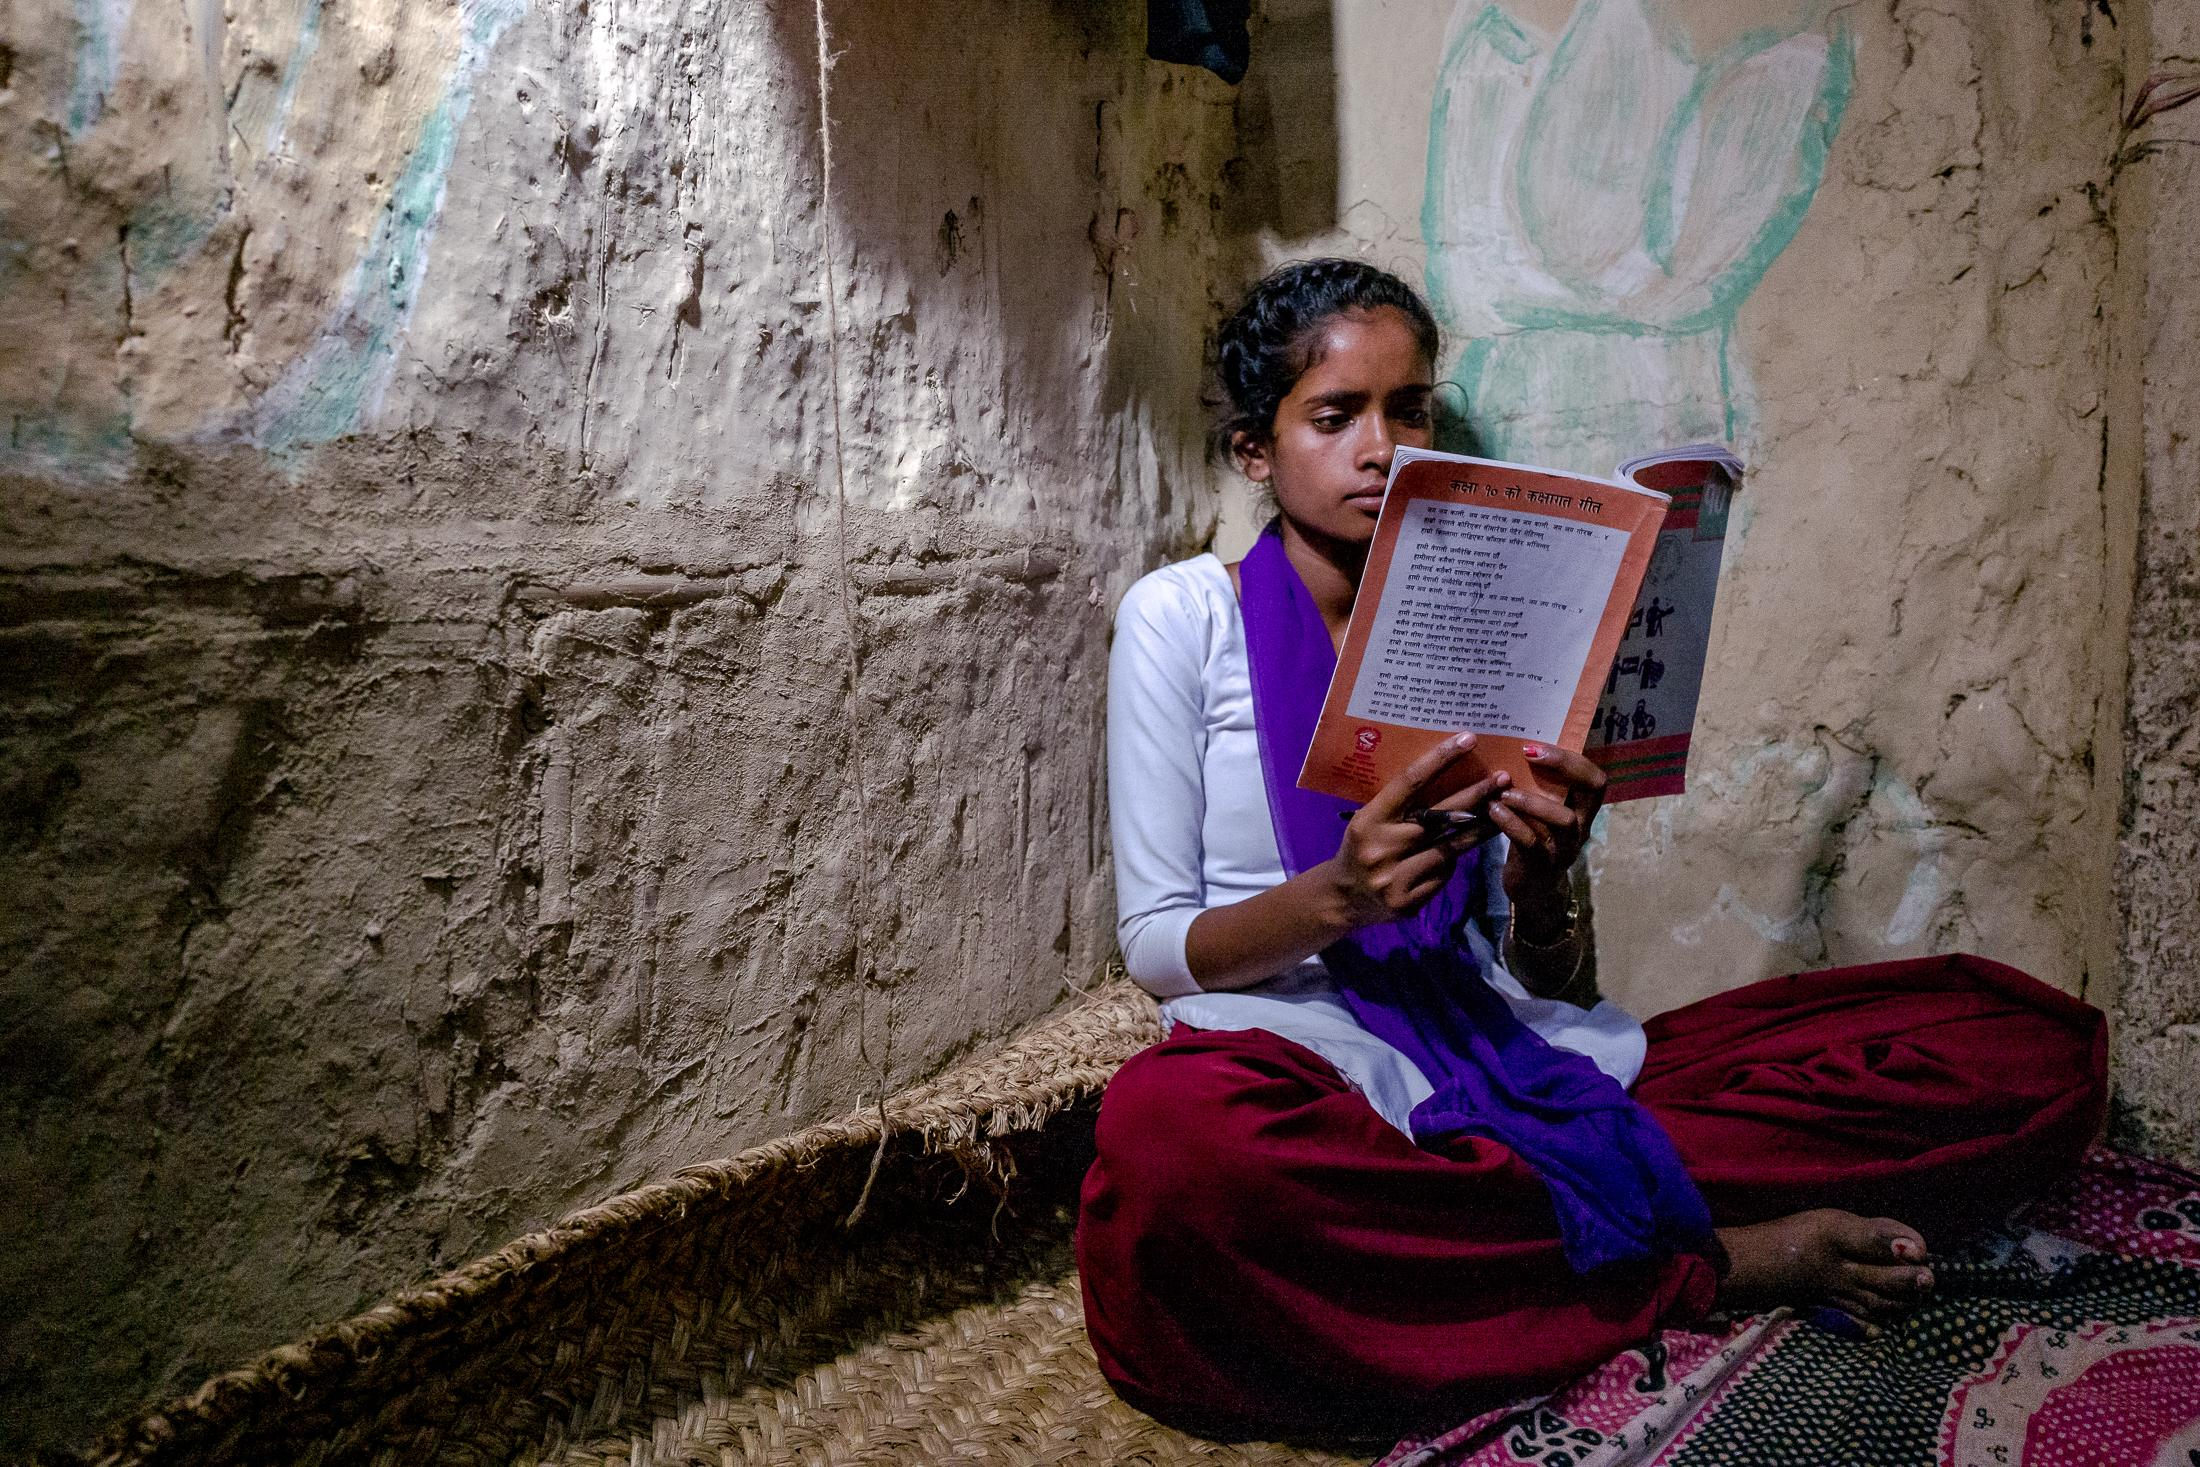 "DOBINI, NEPAL - MAY 29: 15-years-old ""Little Sister"" Arti reads a book sitting in a corner of her bedroom inside her home on May 29, 2019 in Dobini, Nepal. Arti was only 14 when her parents arranged her marriage. Big Sister, Anu, stepped in. Working with her parents and the community to delay marriage and keep Arti in school. Arti is now focussing on her studies, with the hopes of becoming a teacher. Photo: © Omar Havana for VSO International"